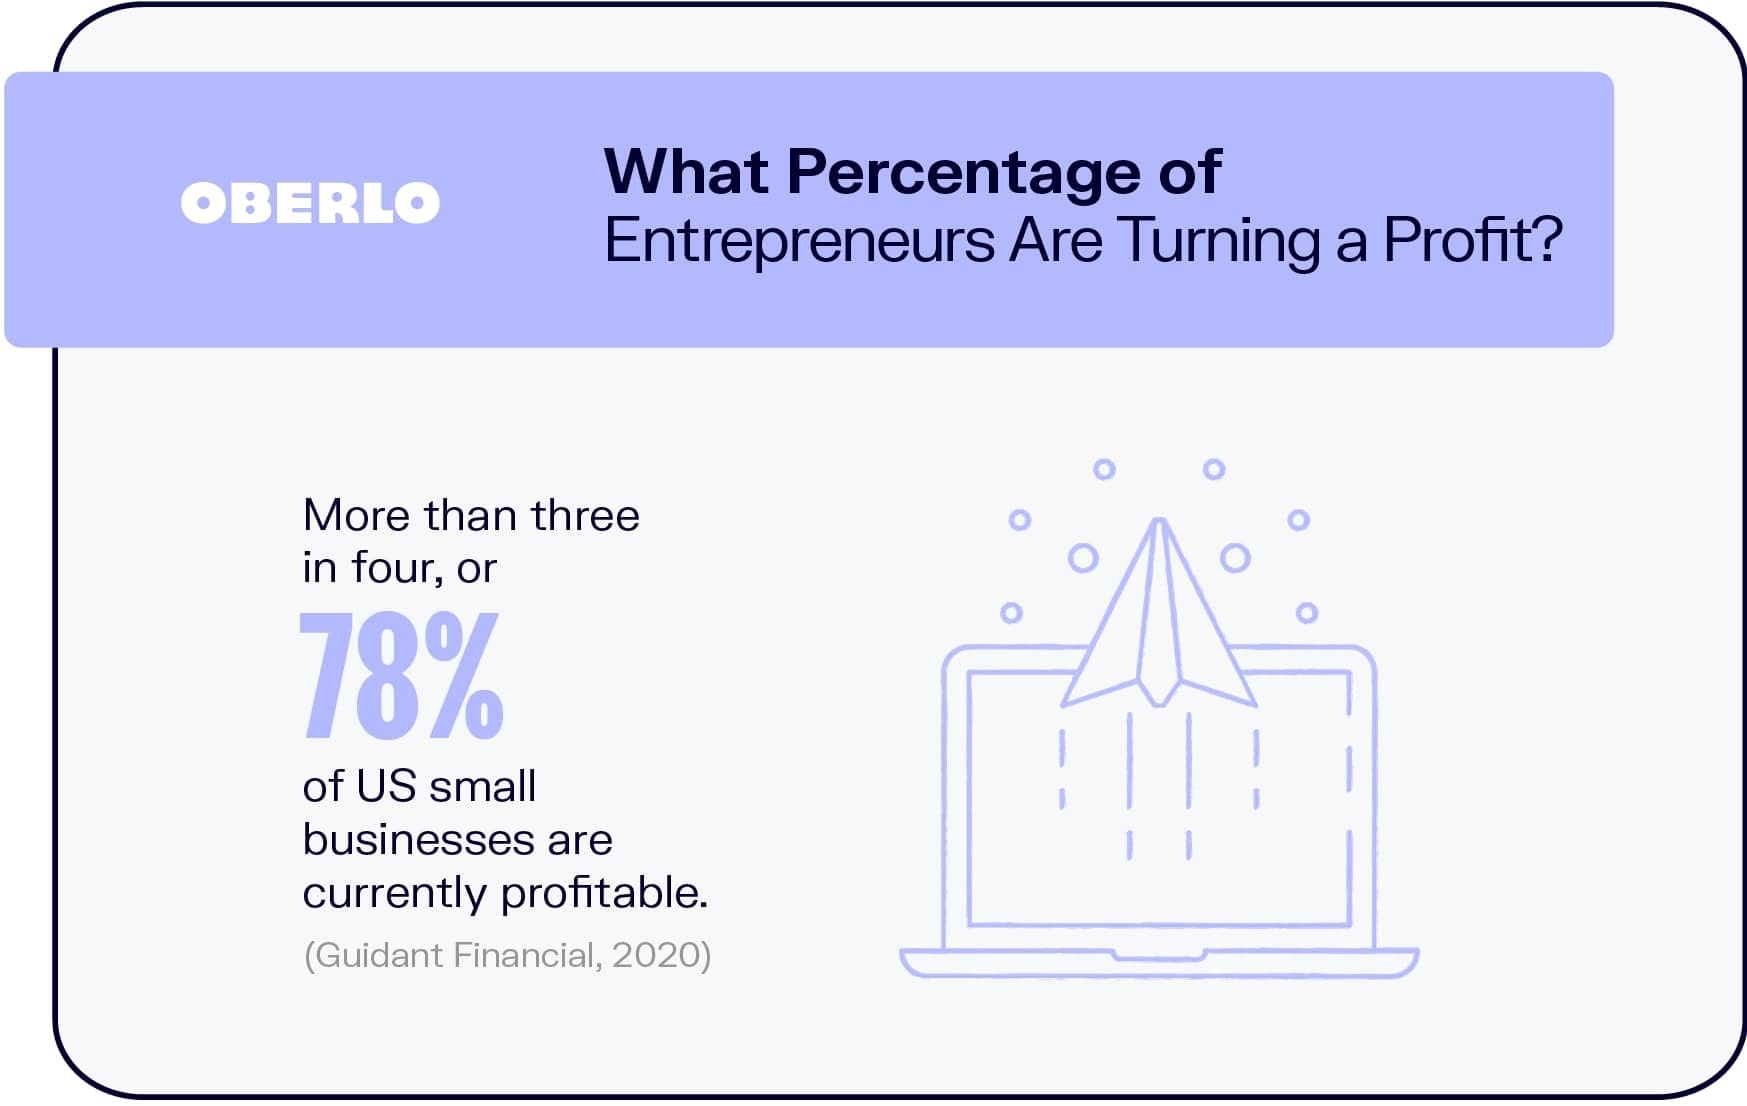 What Percentage of Entrepreneurs Are Turning a Profit?